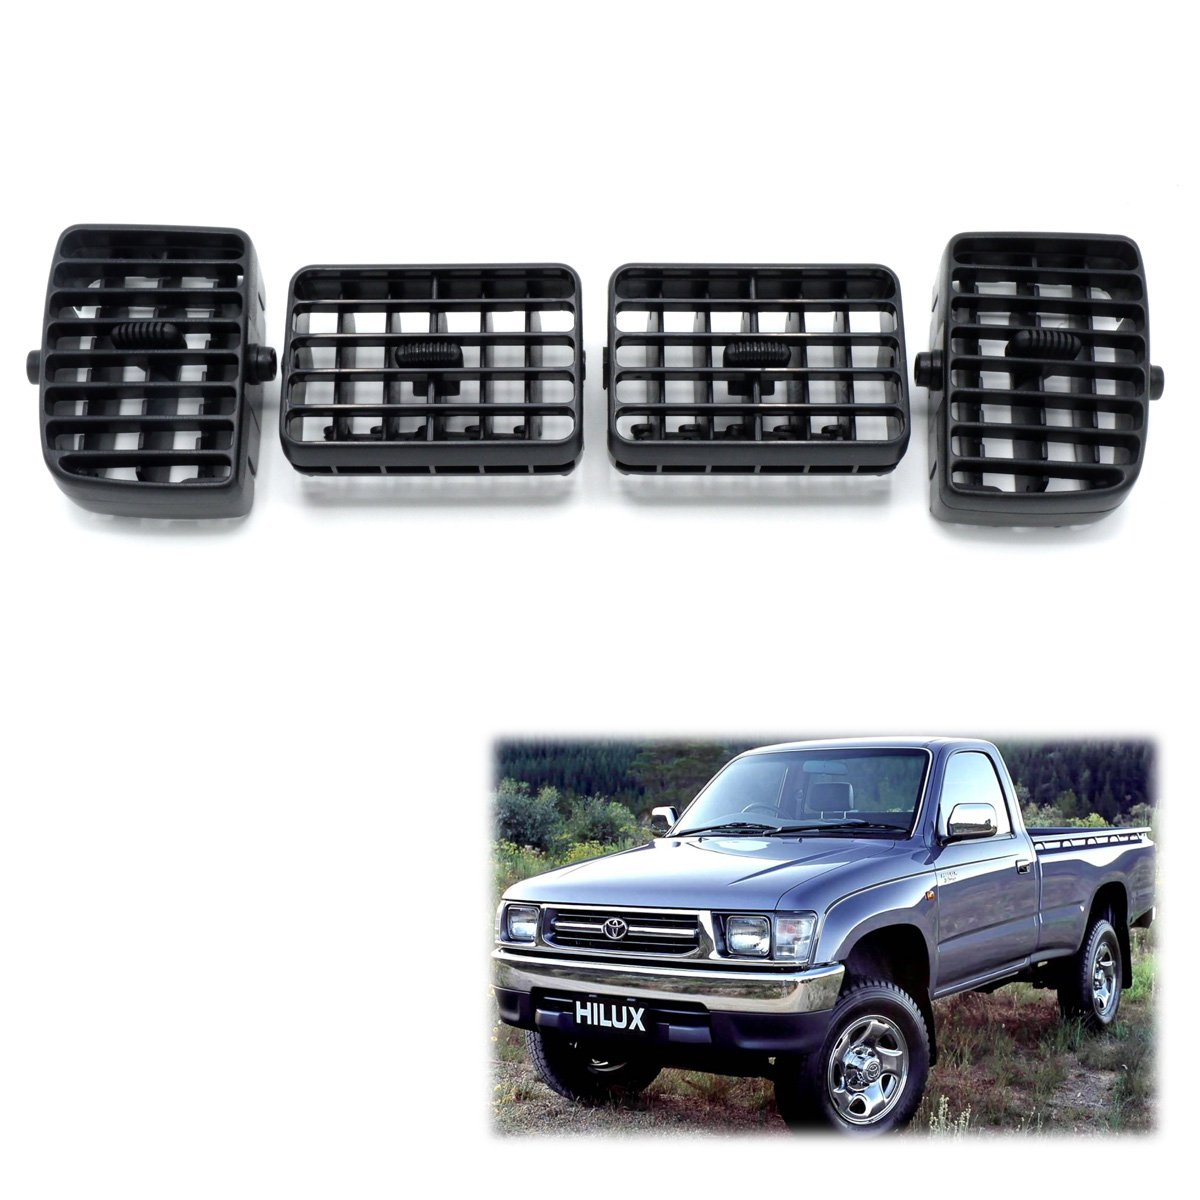 Powerwarauto Grille Air Condition Ventilator Grey For Toyota Hilux Tiger LN145 2 Doors 4 Doors 1997 05